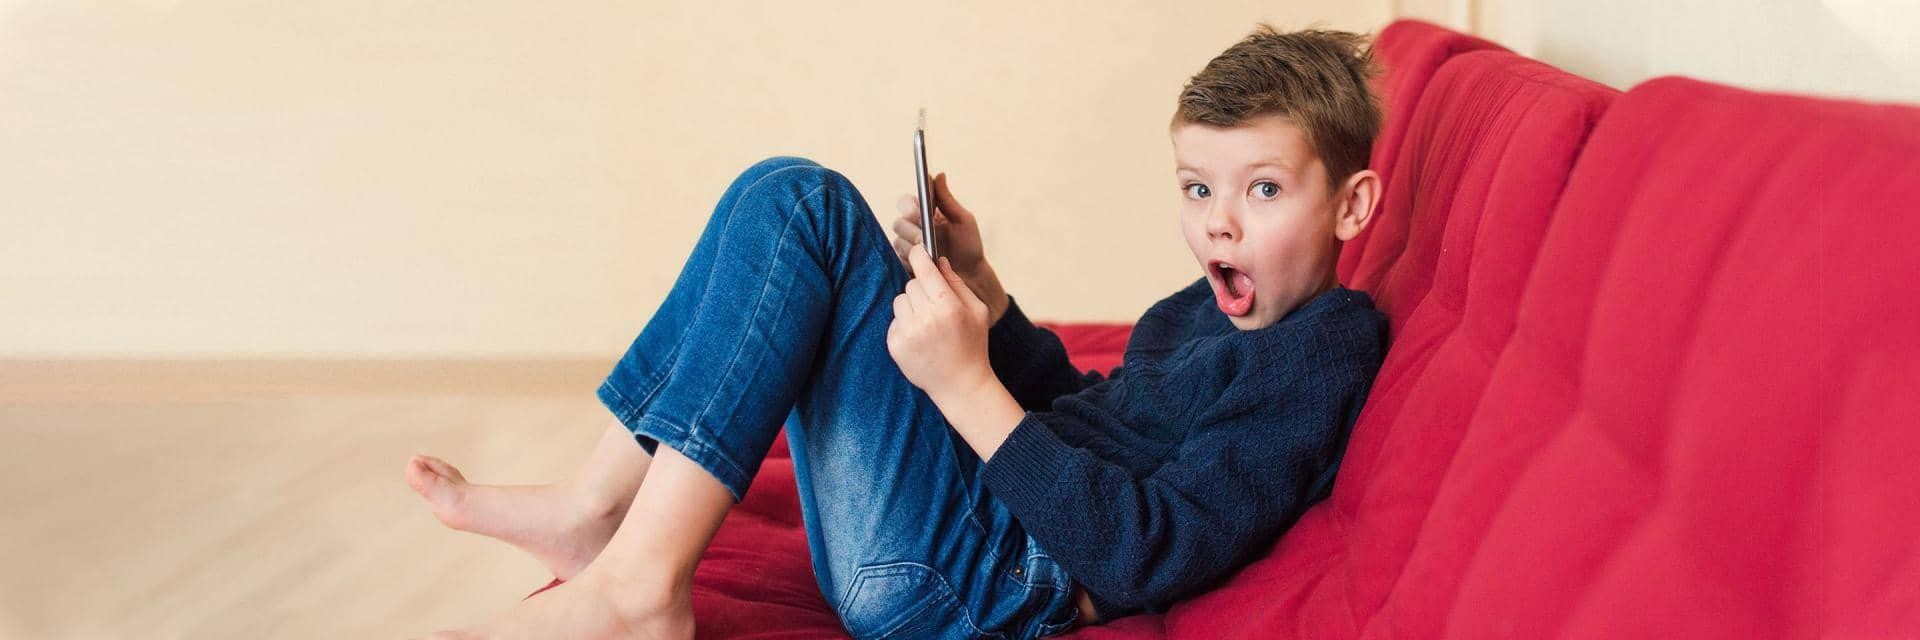 A boy with a look of surprise sits on a red sofa holding a tablet